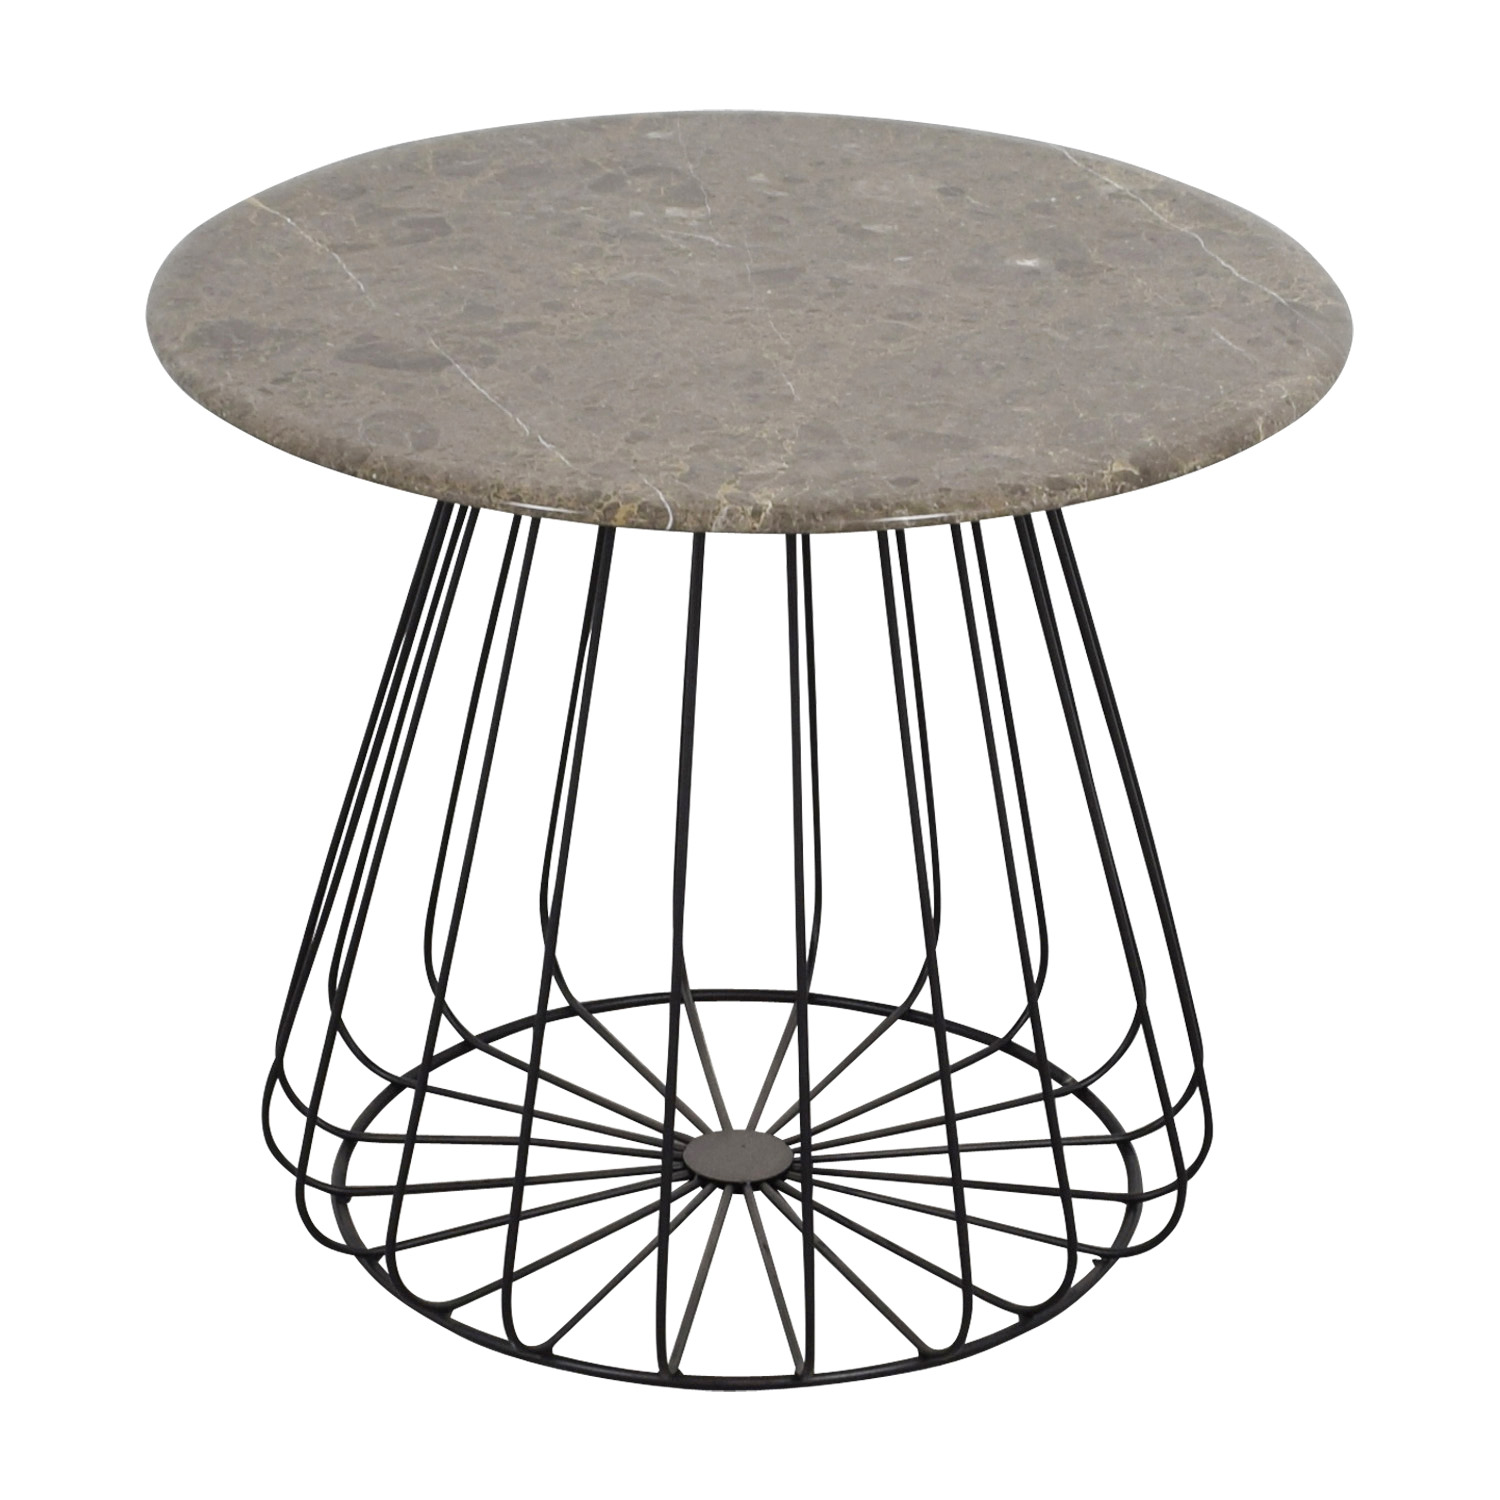 ... Lotus Lotus Round Grey Marble Table Accent Tables ...